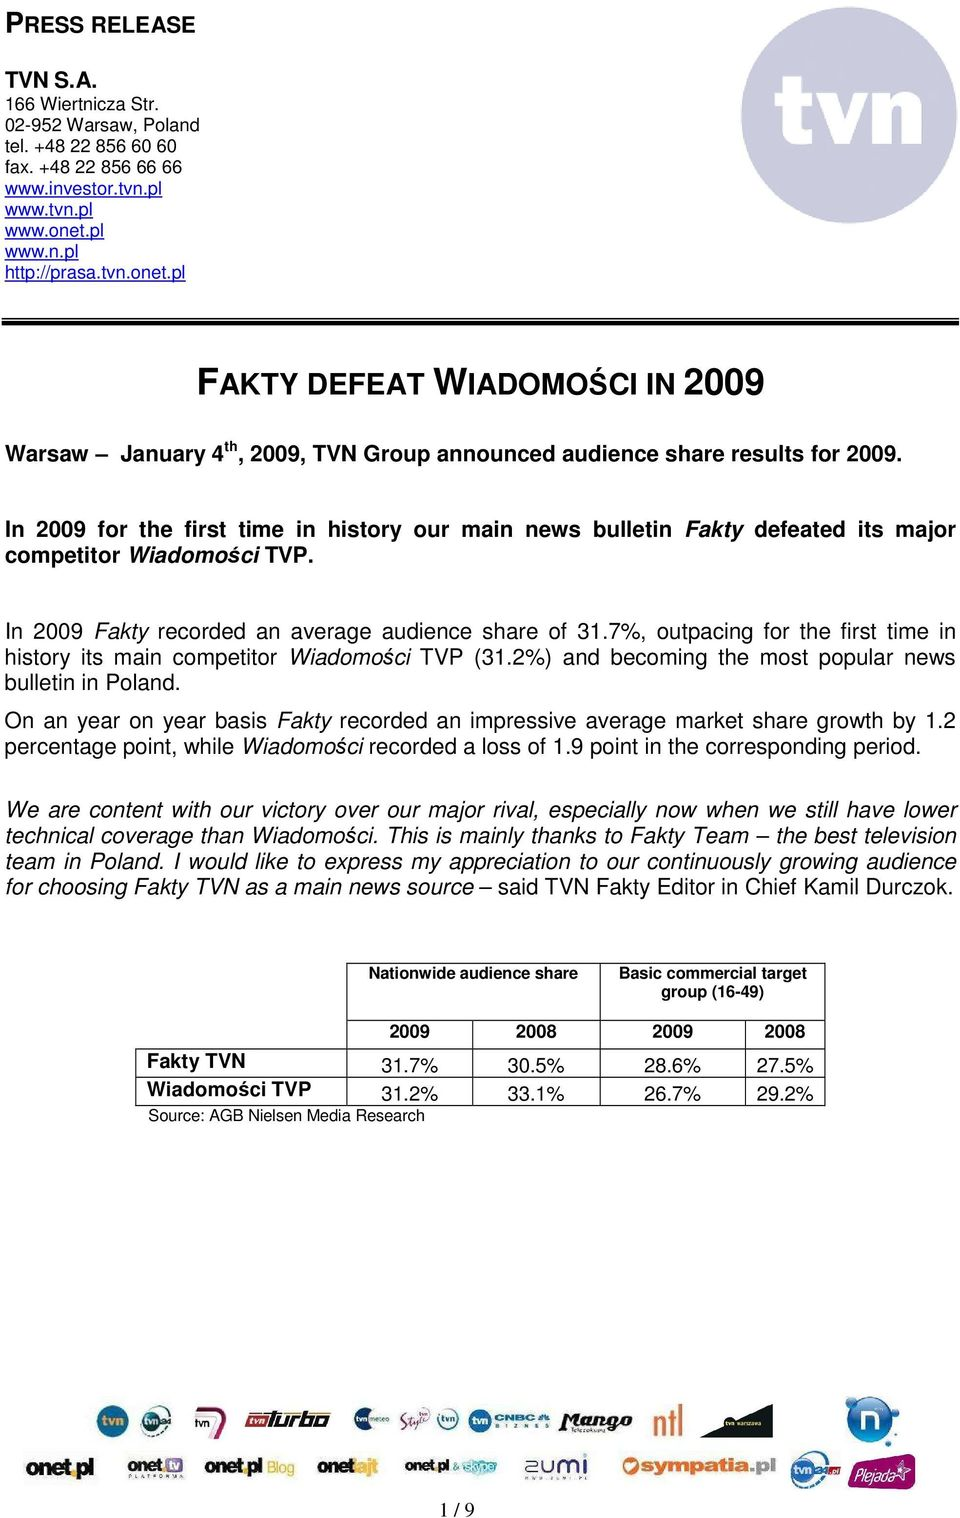 In 2009 for the first time in history our main news bulletin Fakty defeated its major competitor Wiadomości TVP. In 2009 Fakty recorded an average audience share of 31.